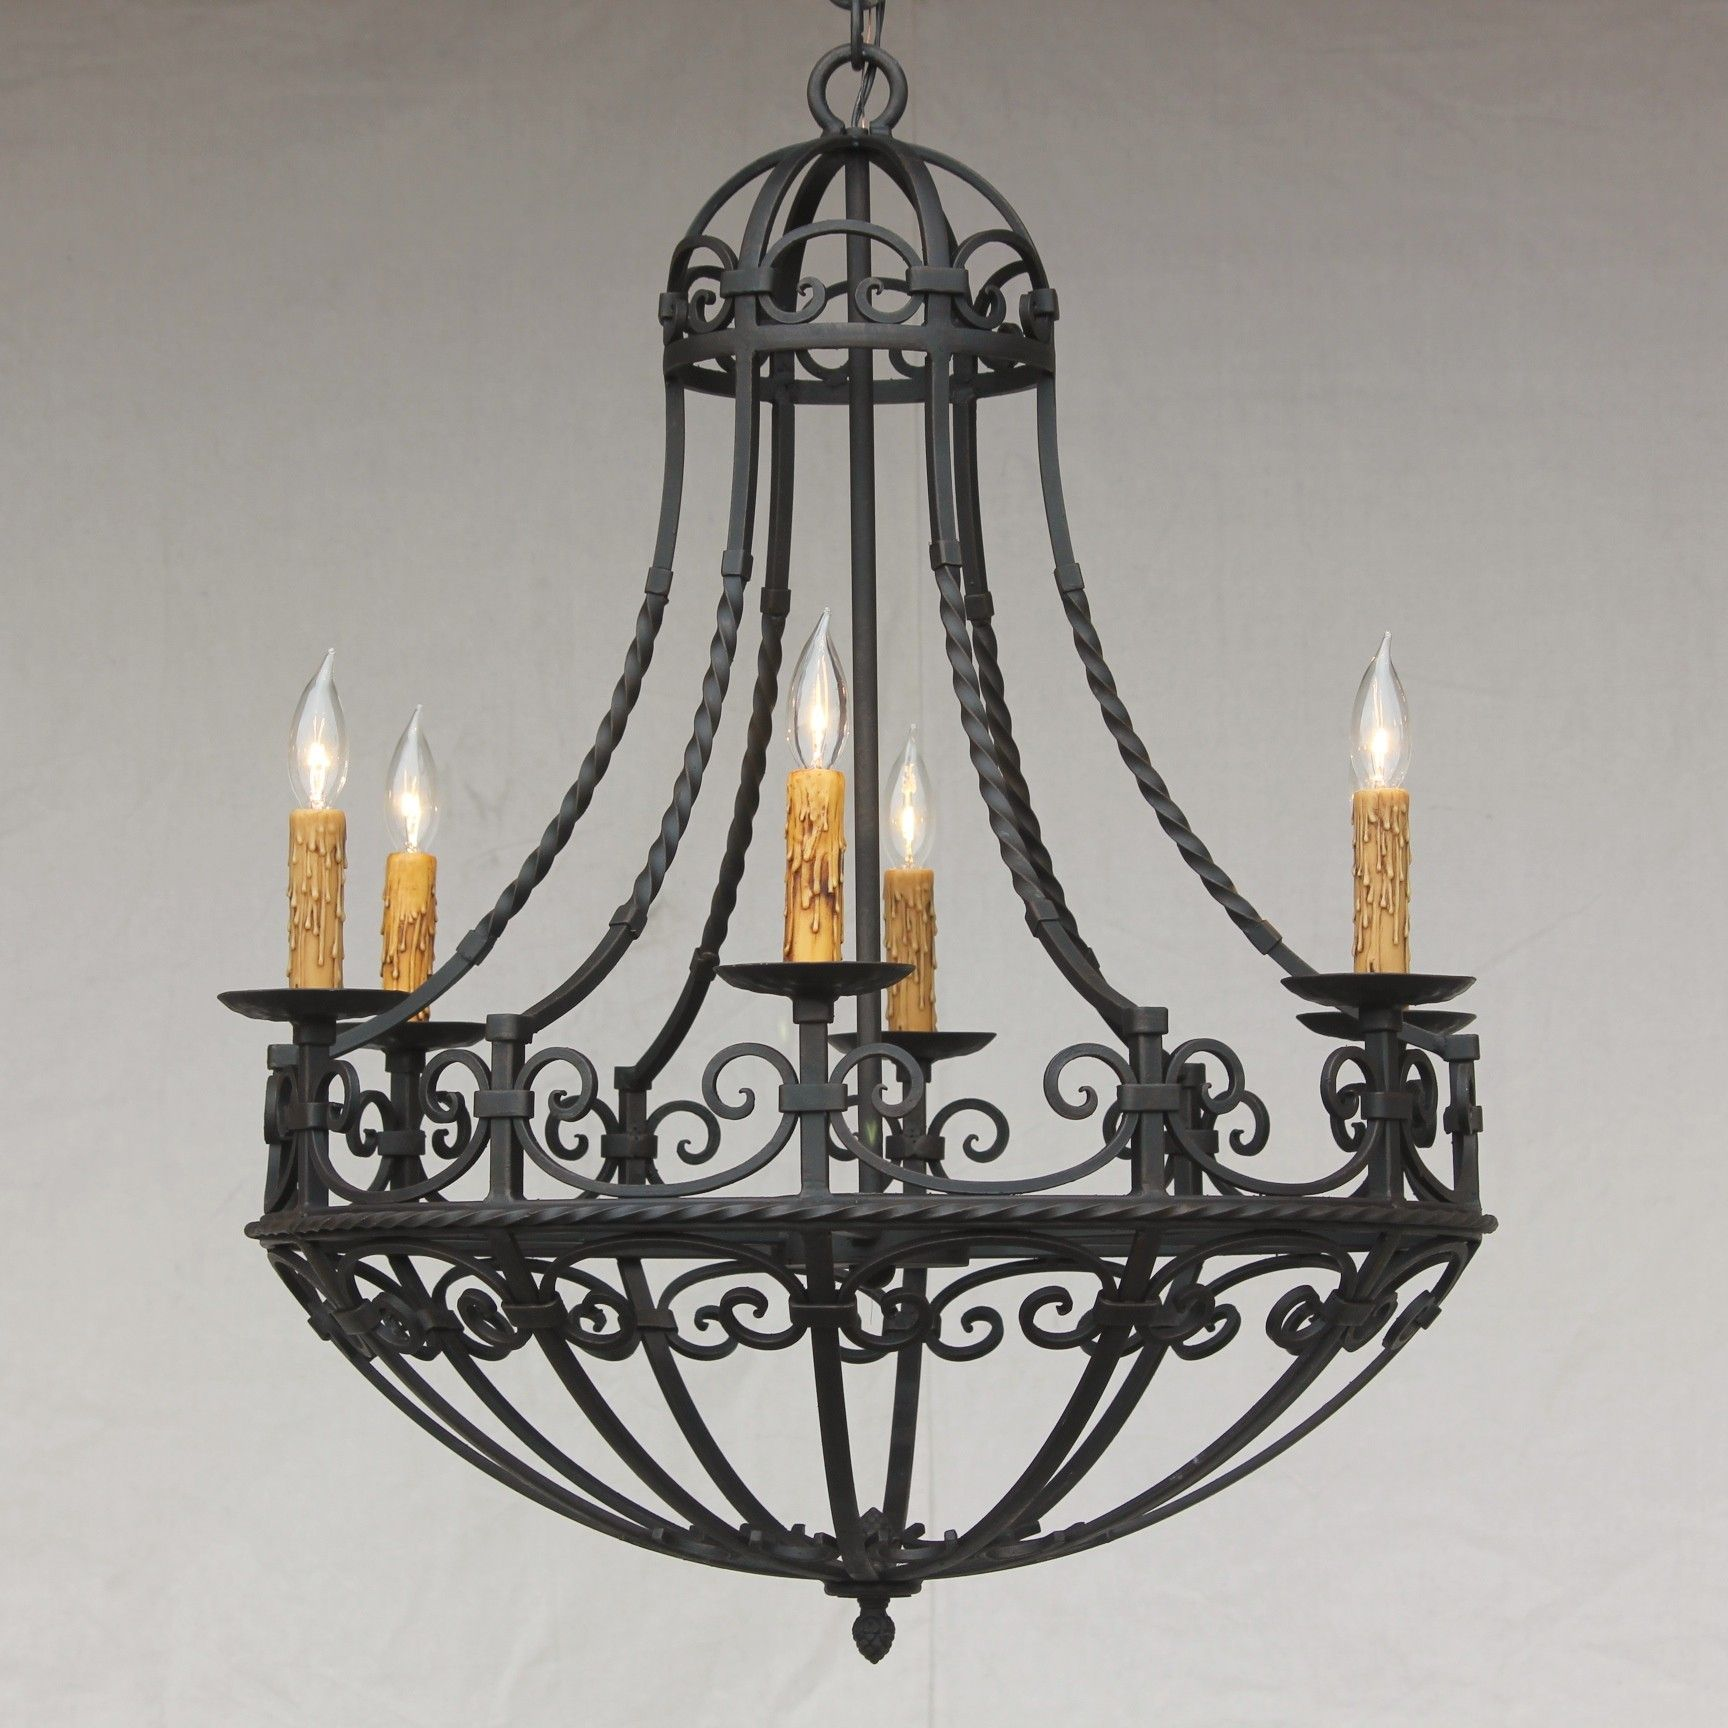 Spanish Revival / Spanish Colonial Chandelier